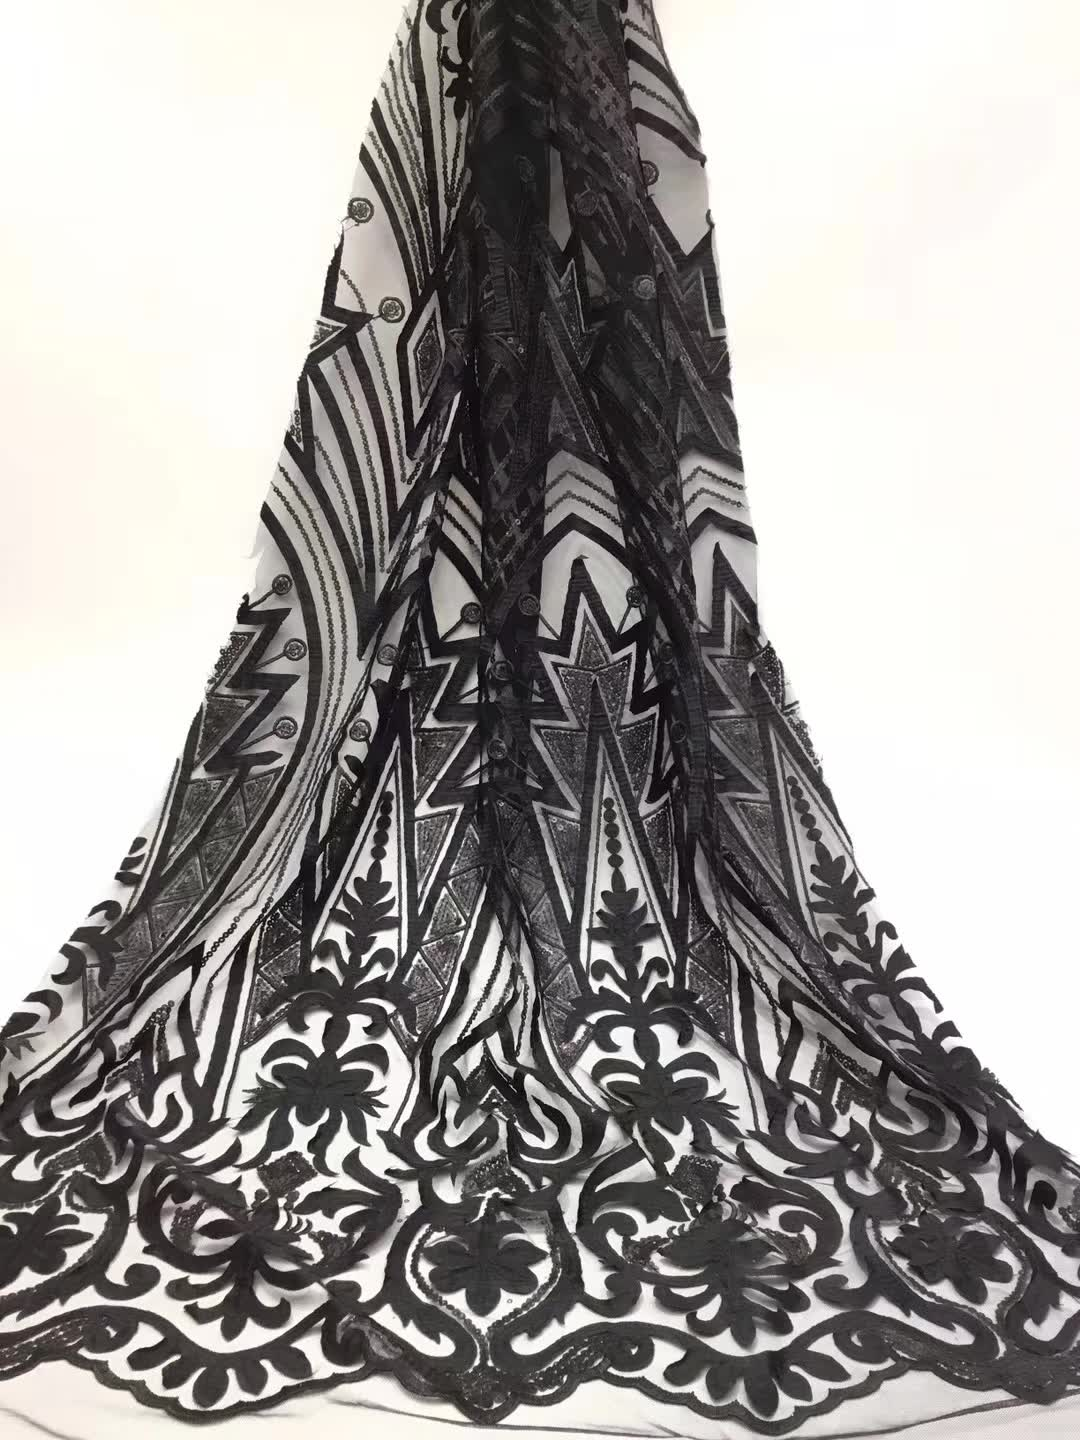 African Lace Fabric 2019 Embroidered Nigerian Laces Fabric Bridal High Quality French Tulle Lace Fabric For Women blackAfrican Lace Fabric 2019 Embroidered Nigerian Laces Fabric Bridal High Quality French Tulle Lace Fabric For Women black